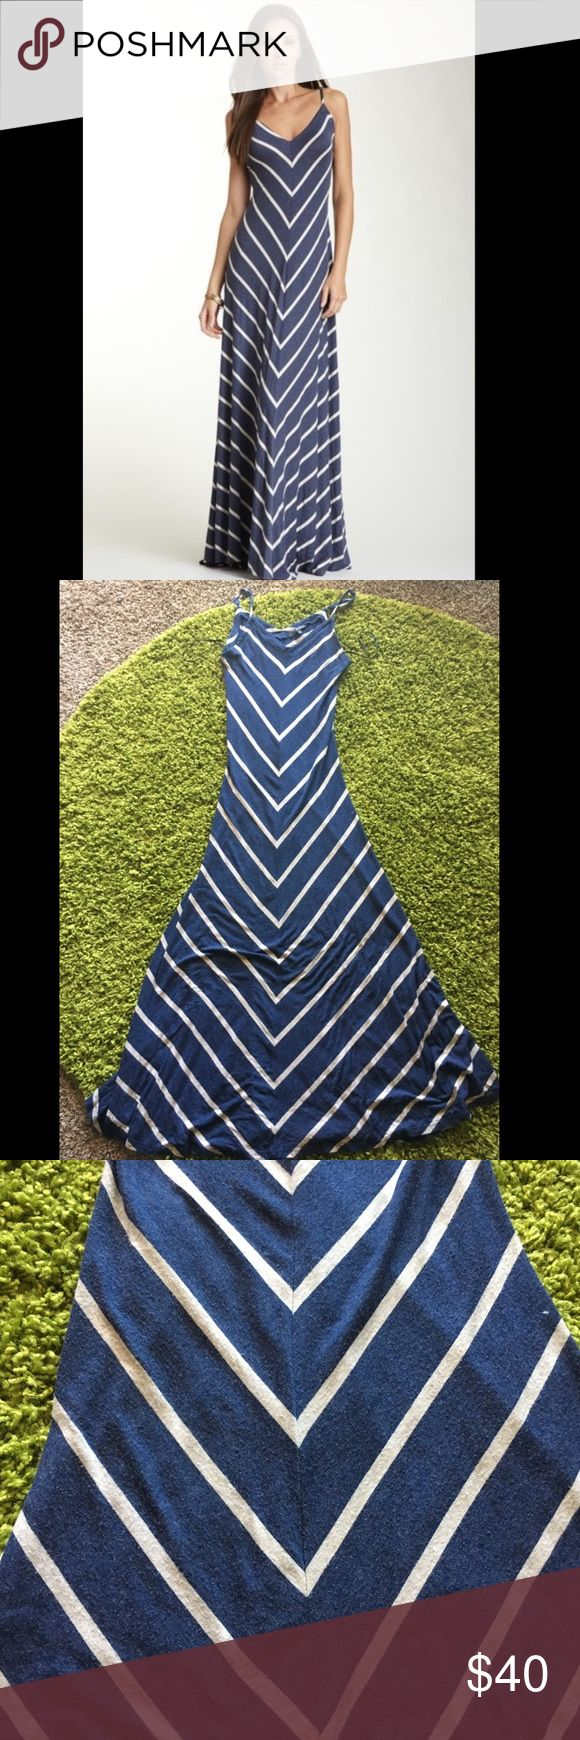 """Matty navy blue chevron maxi dress S Worn A few times - Adjustable Straps! Navy Blue Chevron Maxi Dress by Matty. 51"""""""" From The Underarm To The Bottom, Chest 13.5"""""""" But Can Stretch To 19"""""""". 92% Rayon 8% Spandex - size small...tagged free people for visibility only Free People Dresses Maxi"""